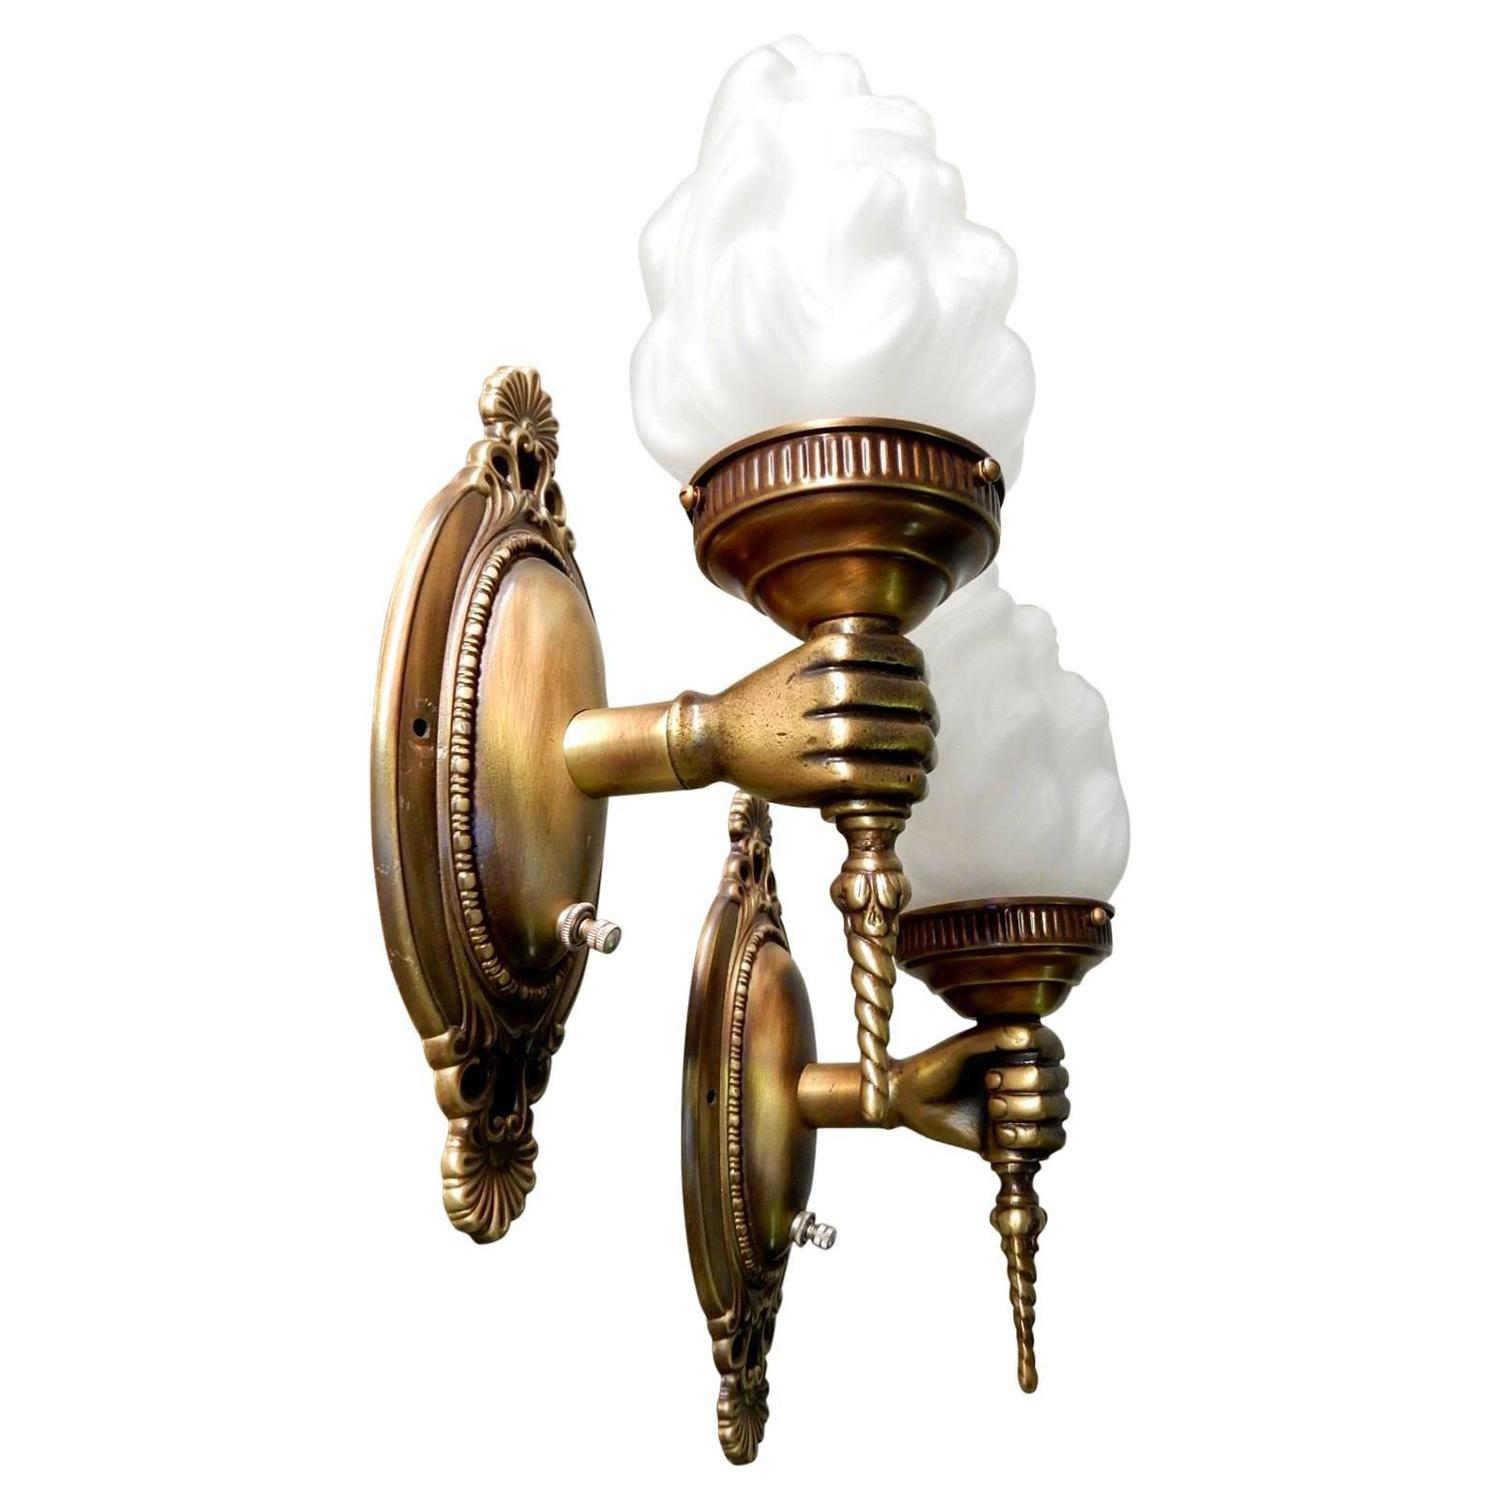 Vintage Brass Wall Lamps : Pair Antique Brass Hand Torch Wall Sconce Lamps at 1stdibs